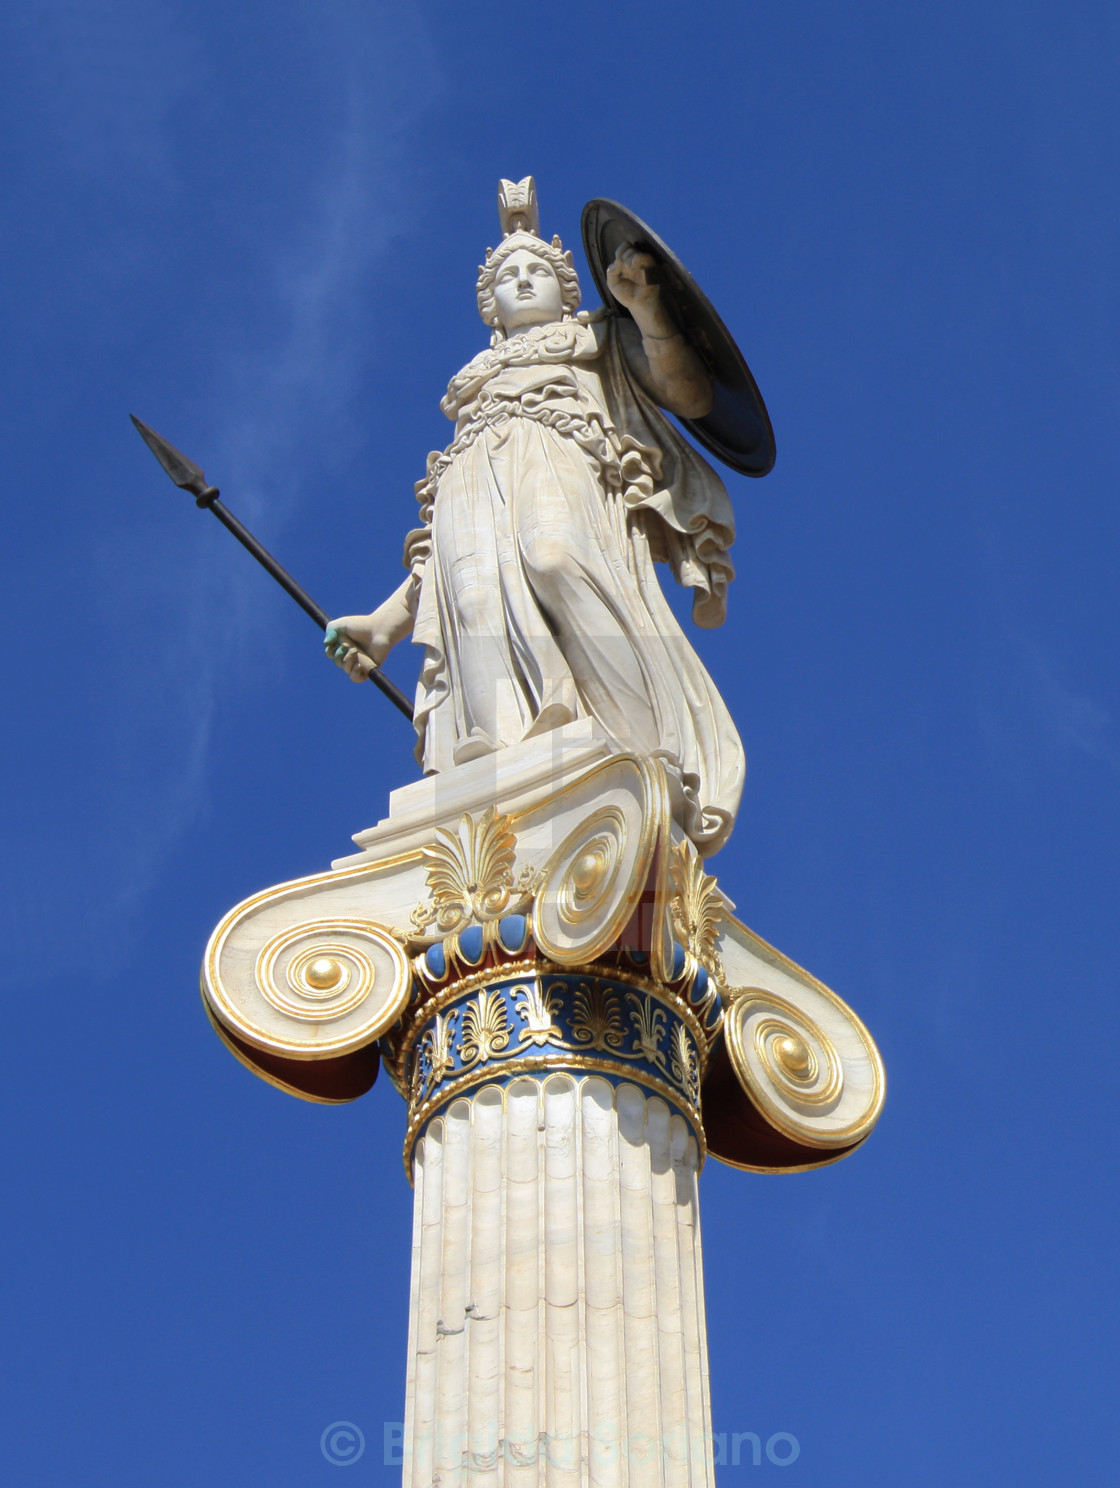 """Statue of goddess Athena in Greece"" stock image"